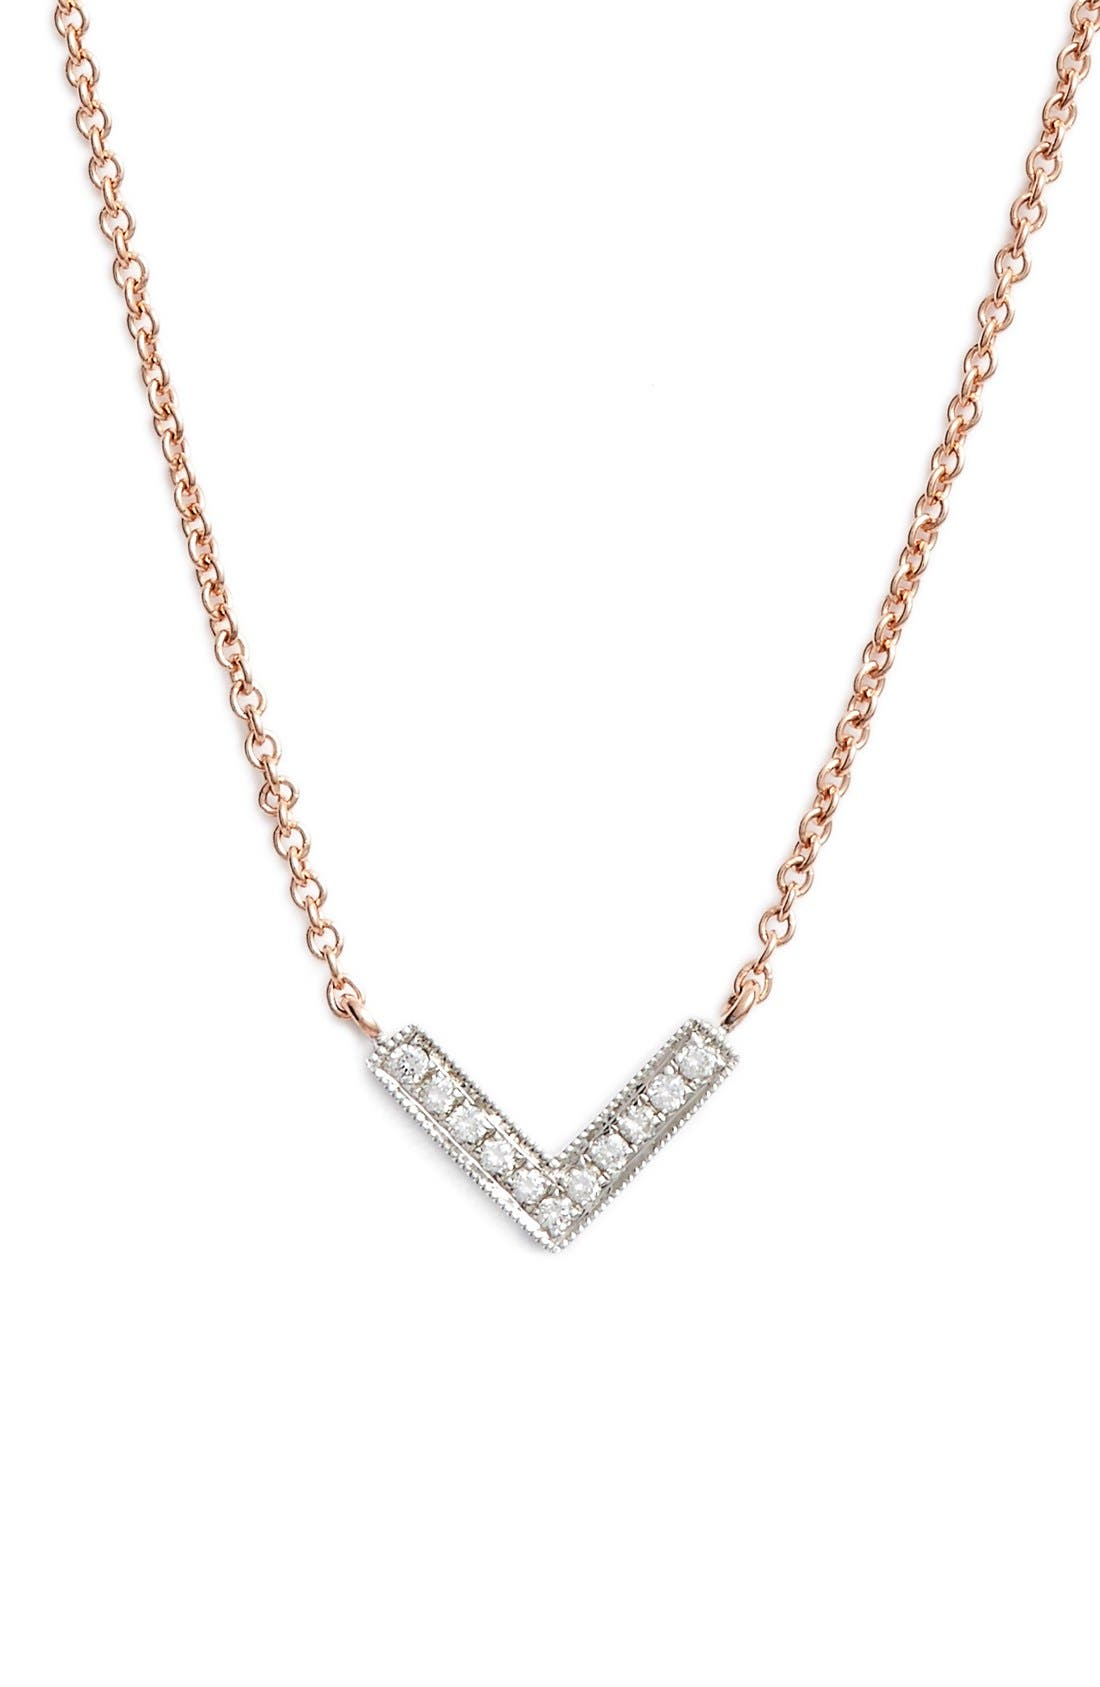 Main Image - Dana Rebecca Designs 'Sylvie Rose' Diamond V Pendant Necklace